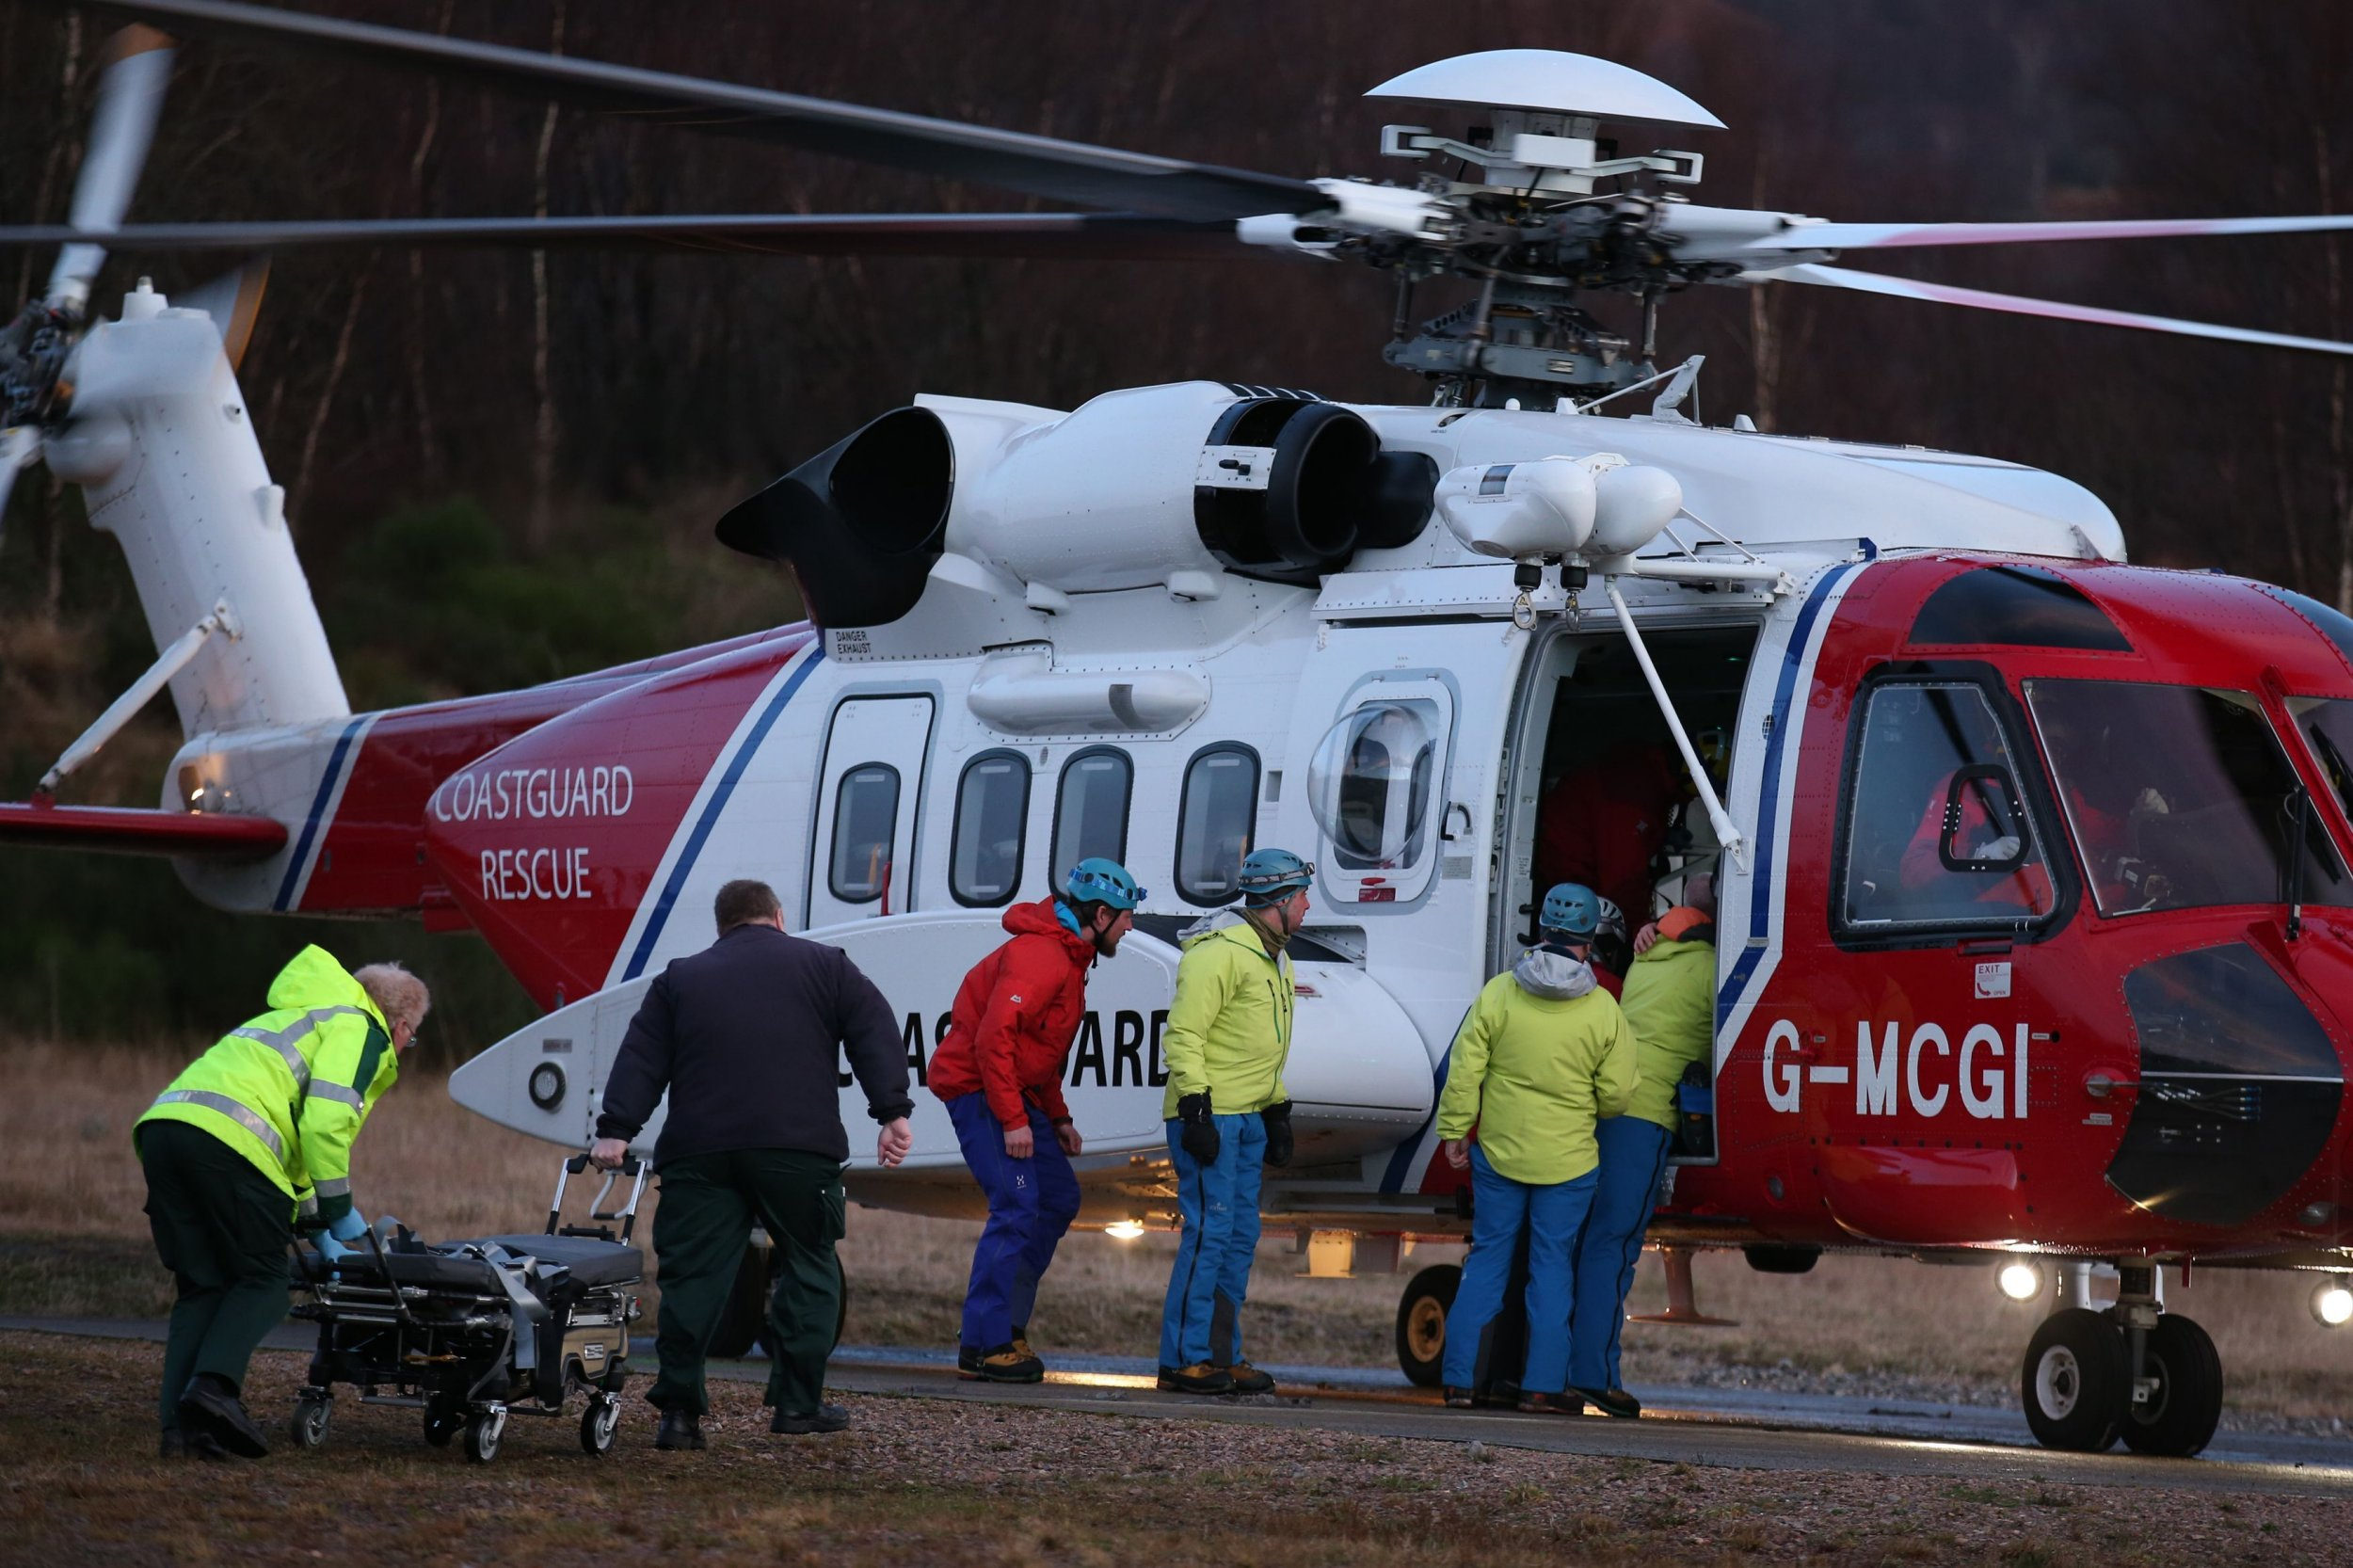 A casualty is taken from a search and rescue helicopter after an avalanche in the Creag Meagaidh area near Fort William. PRESS ASSOCIATION Photo. Picture date: Wednesday February 17, 2016. See PA story POLICE Avalanche. Photo credit should read: Andrew Milligan/PA Wire